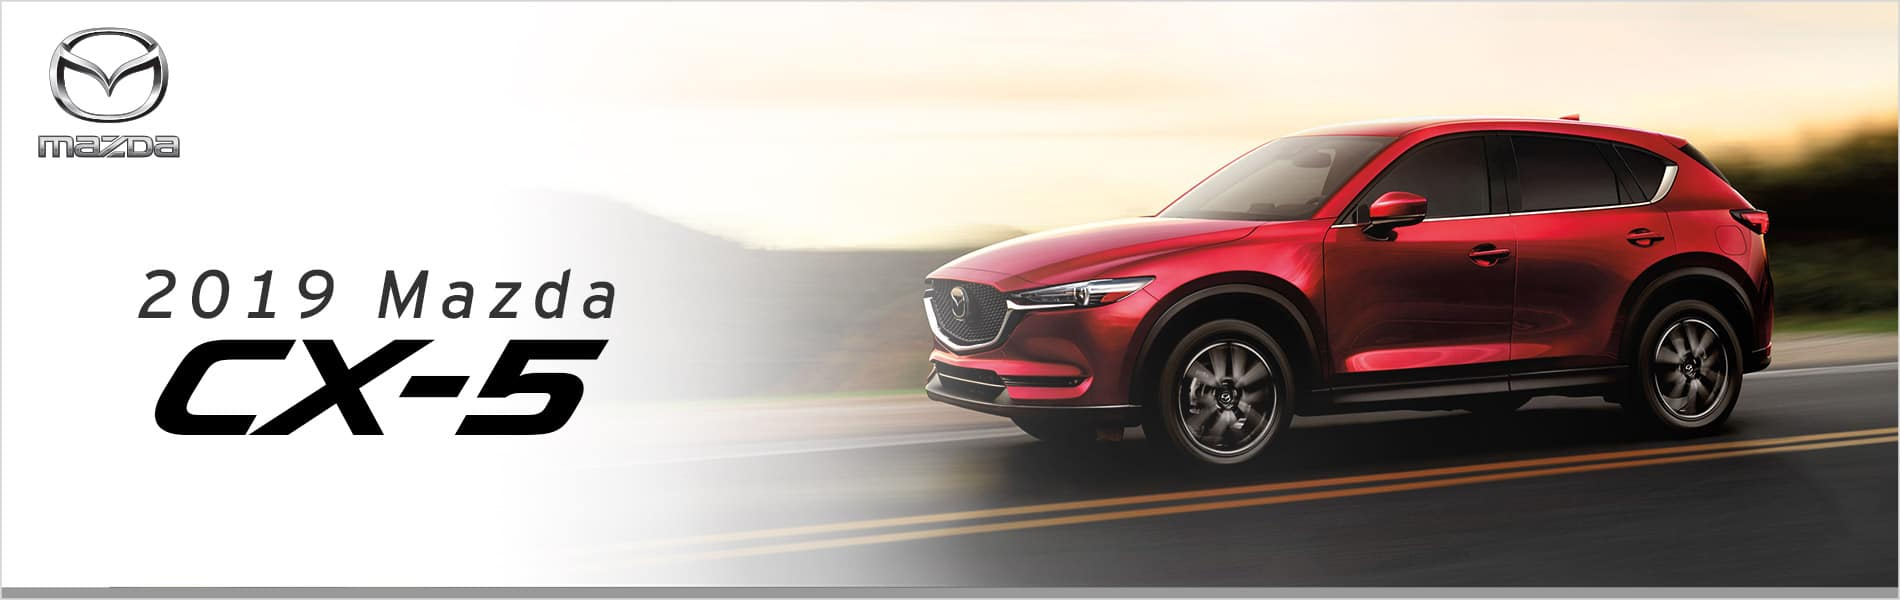 The new 2019 Mazda CX-5 at Mazda of Bedford in Ohio